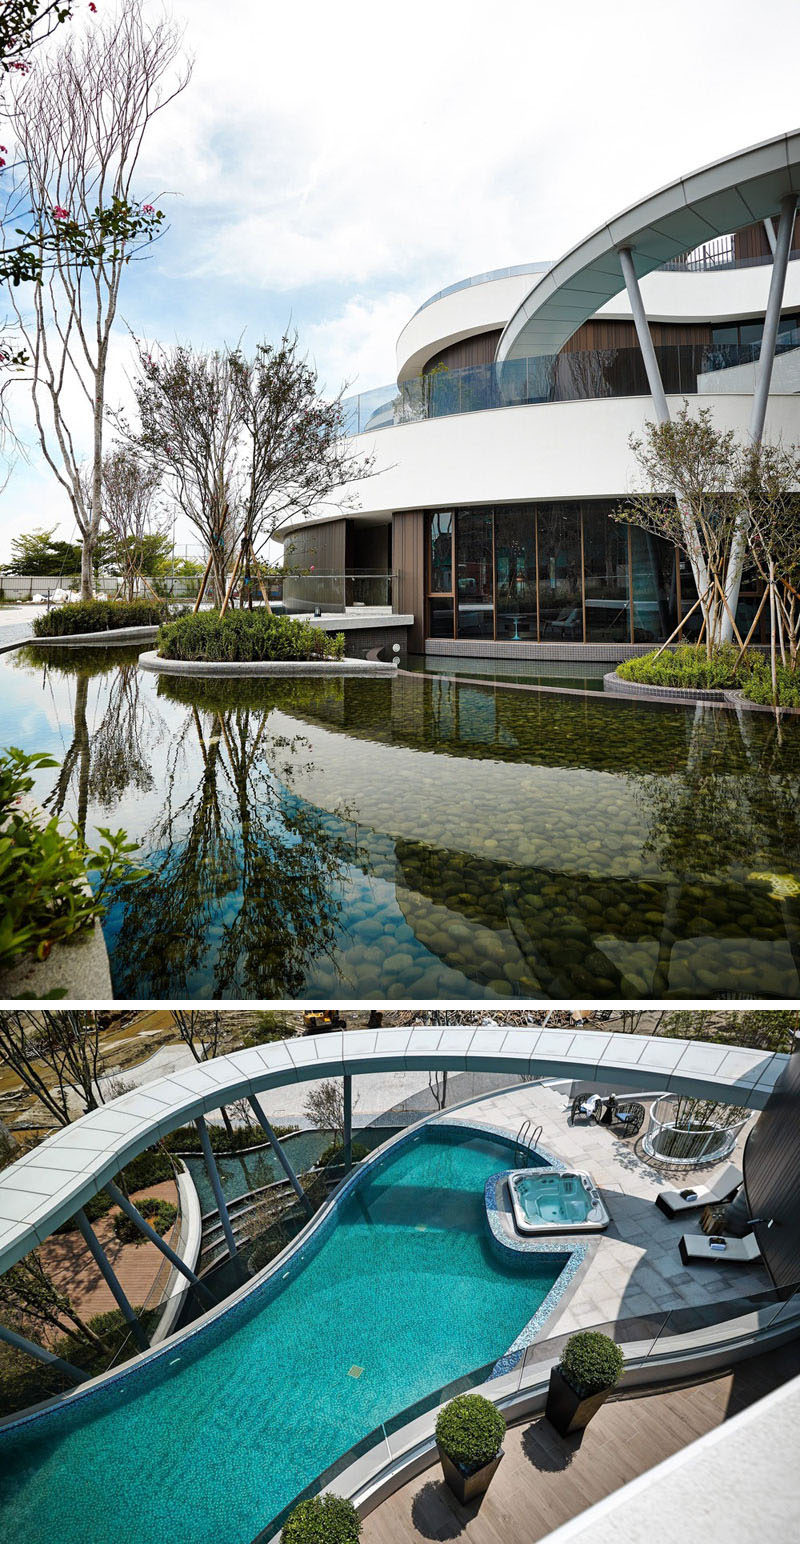 This clubhouse is surrounded by a landscaped pond, that can also be seen from the swimming pool, located on a different level of the building.